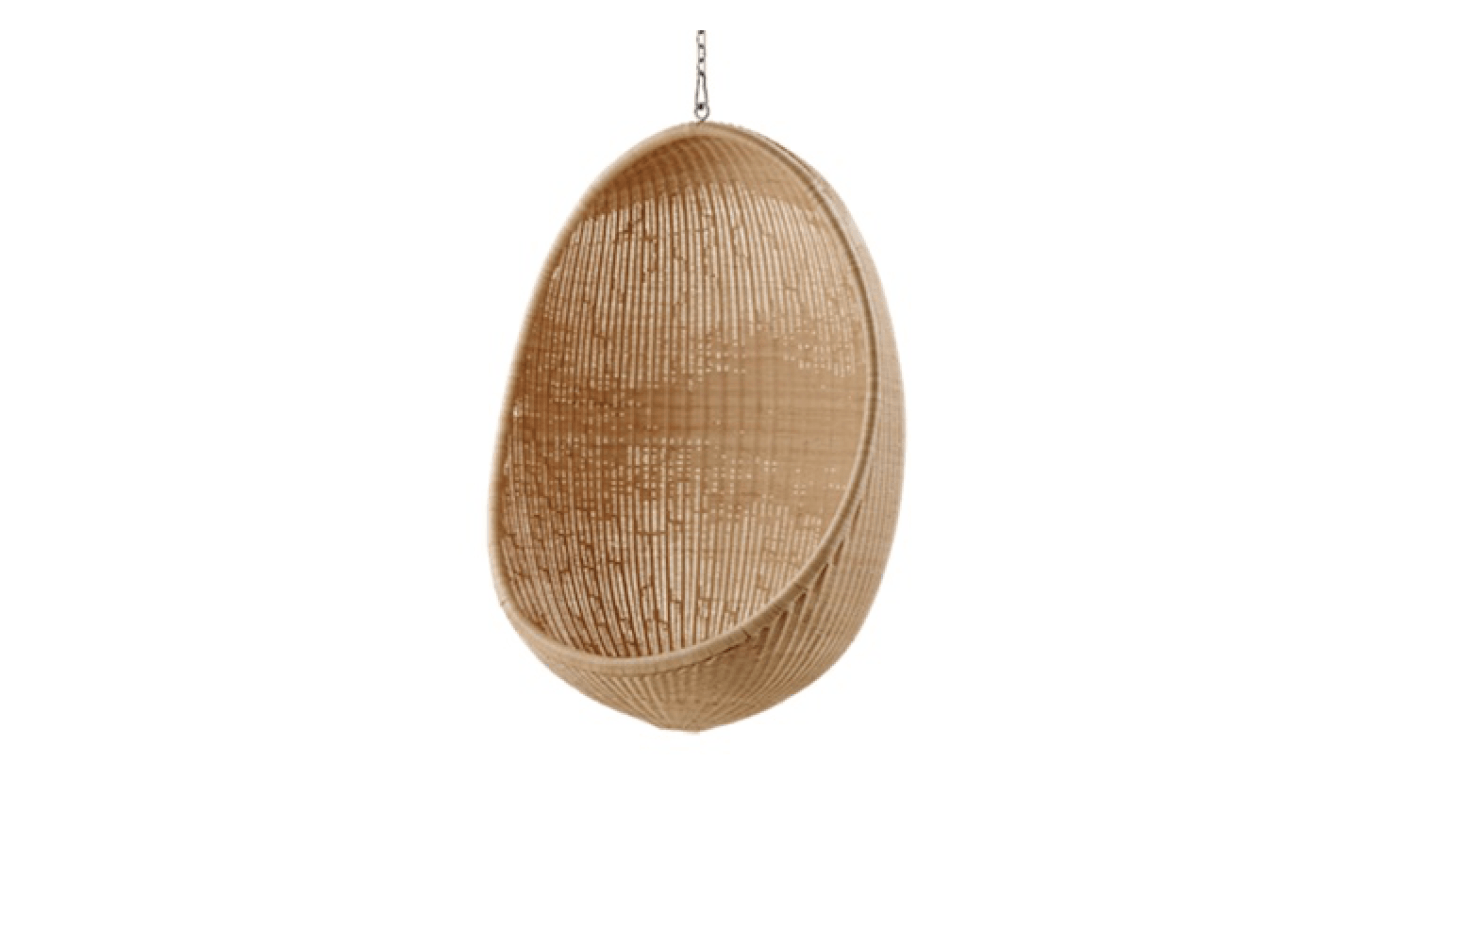 A Hanging Egg Chair By Sika Design Is 12,995 SEK ($1,546.40 USD) From  Artilleriet